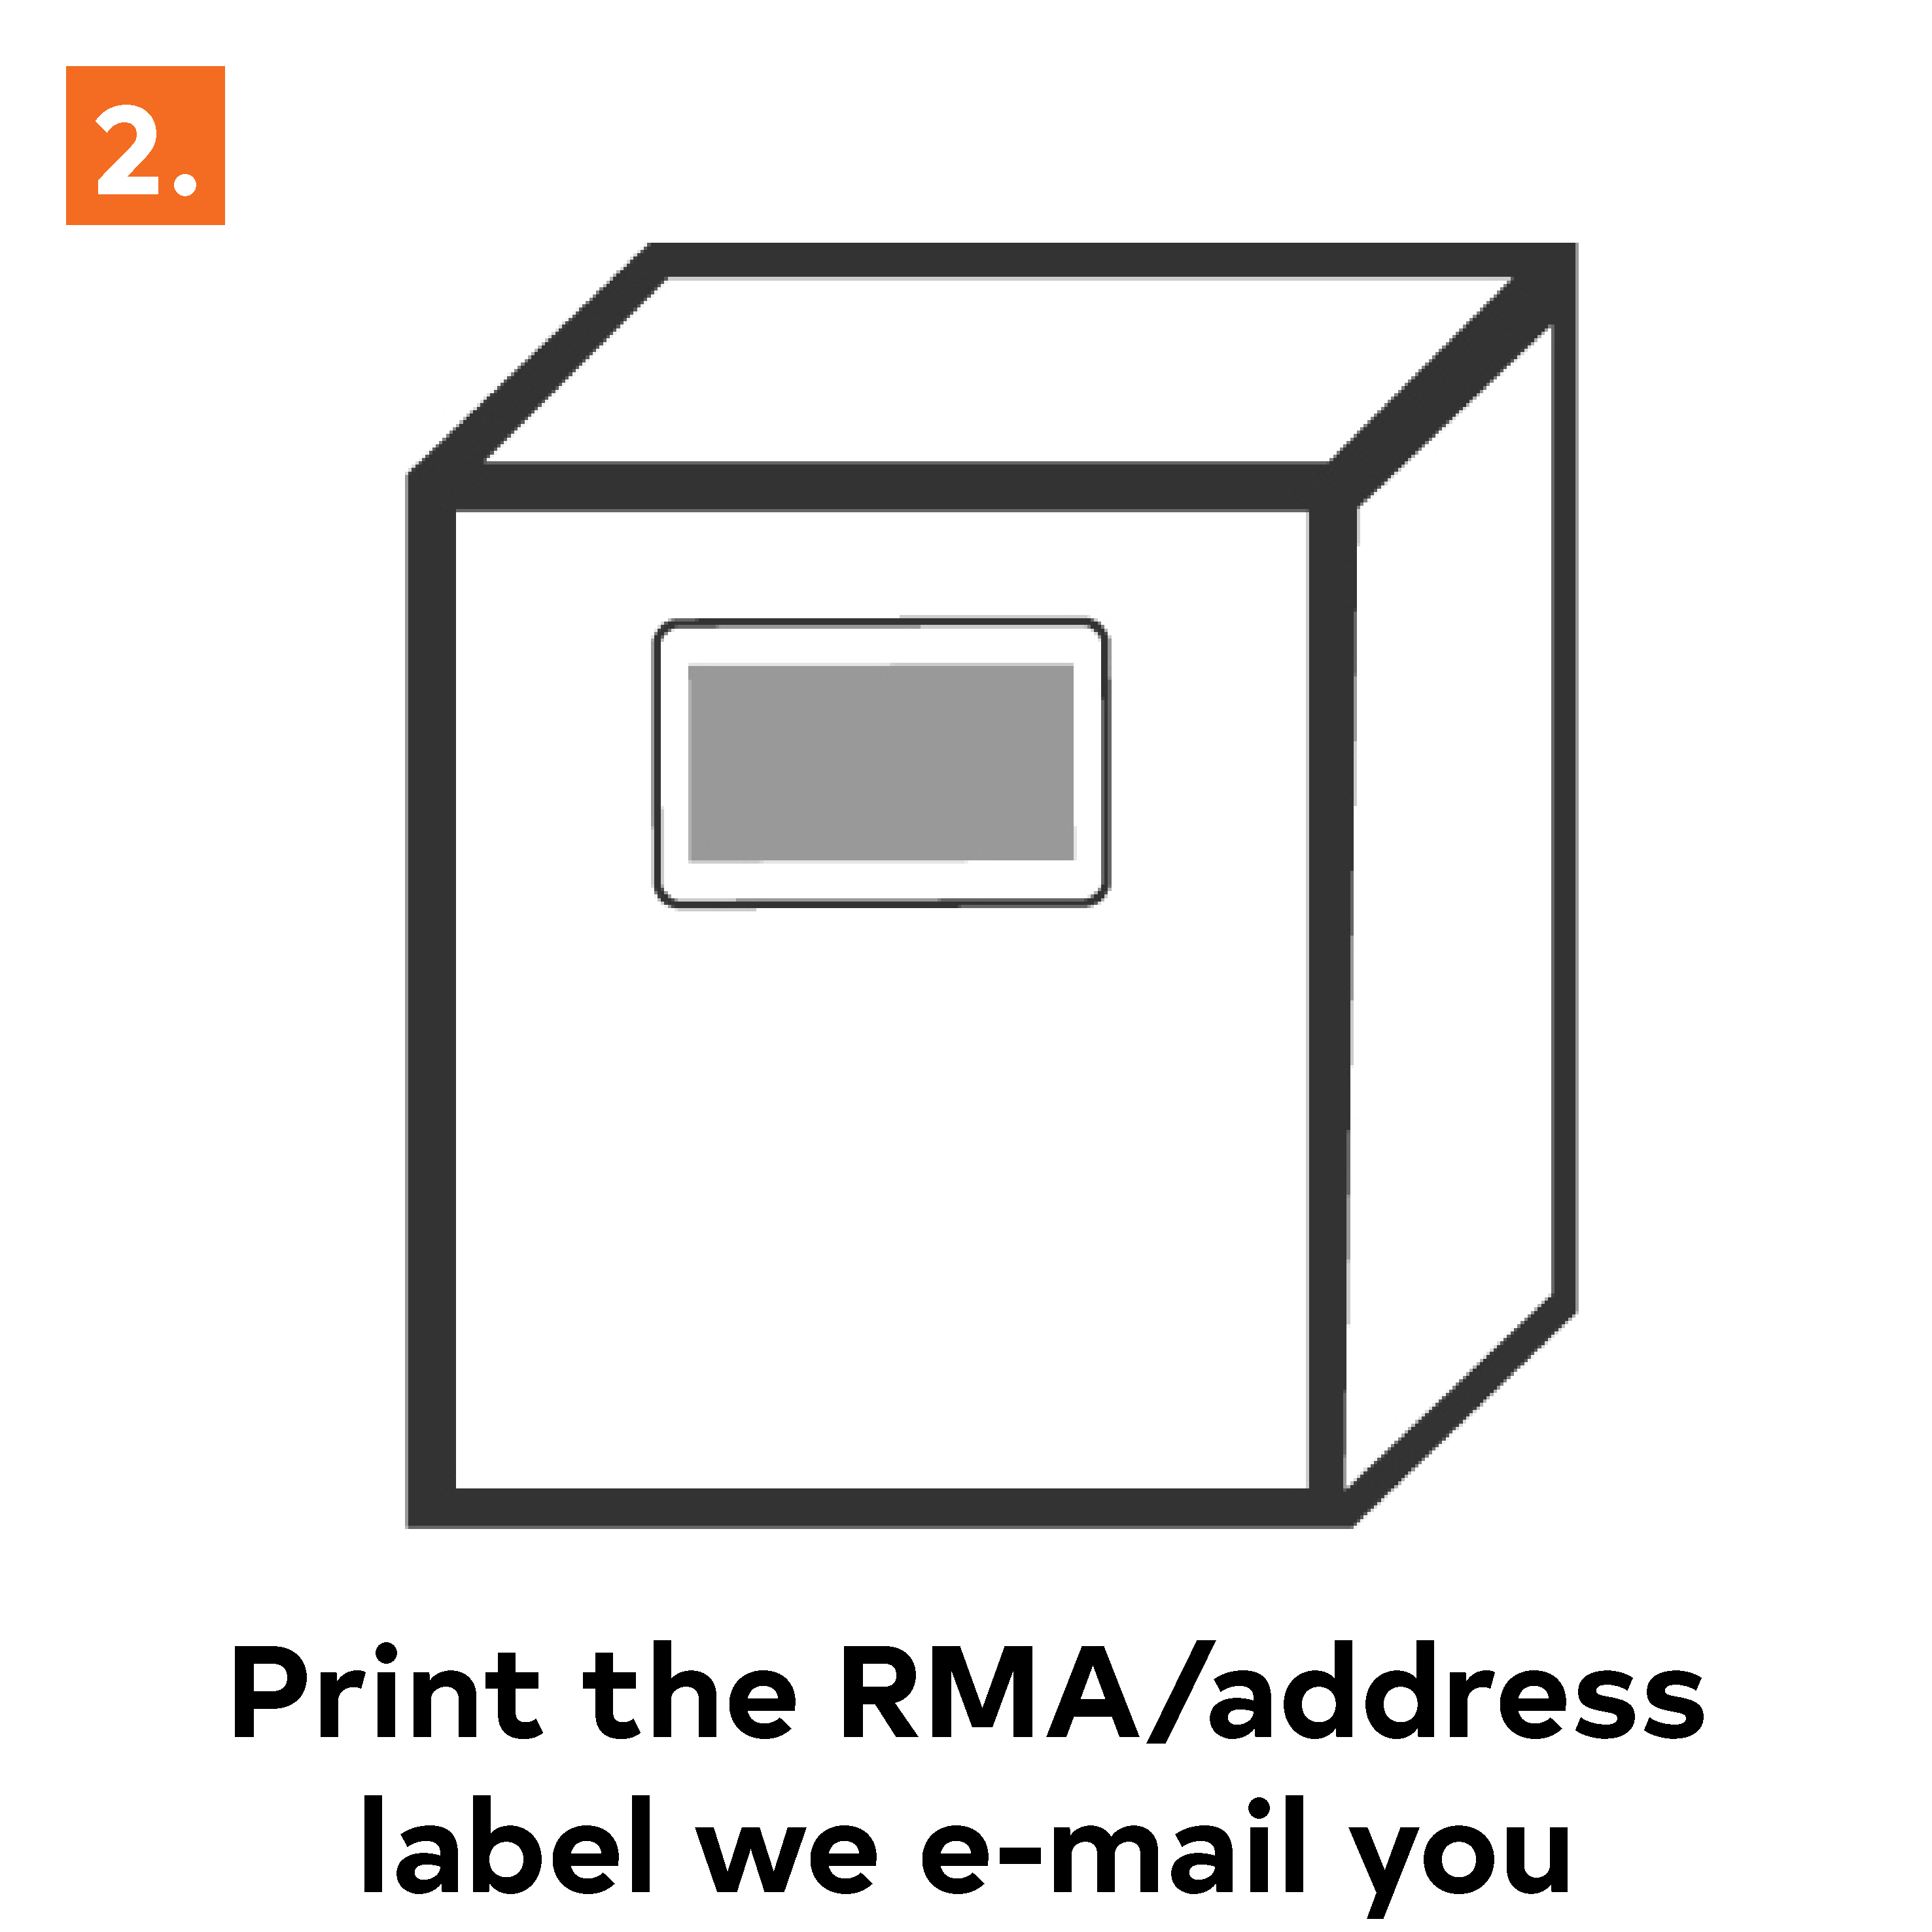 print-the-address-label-we-email-you